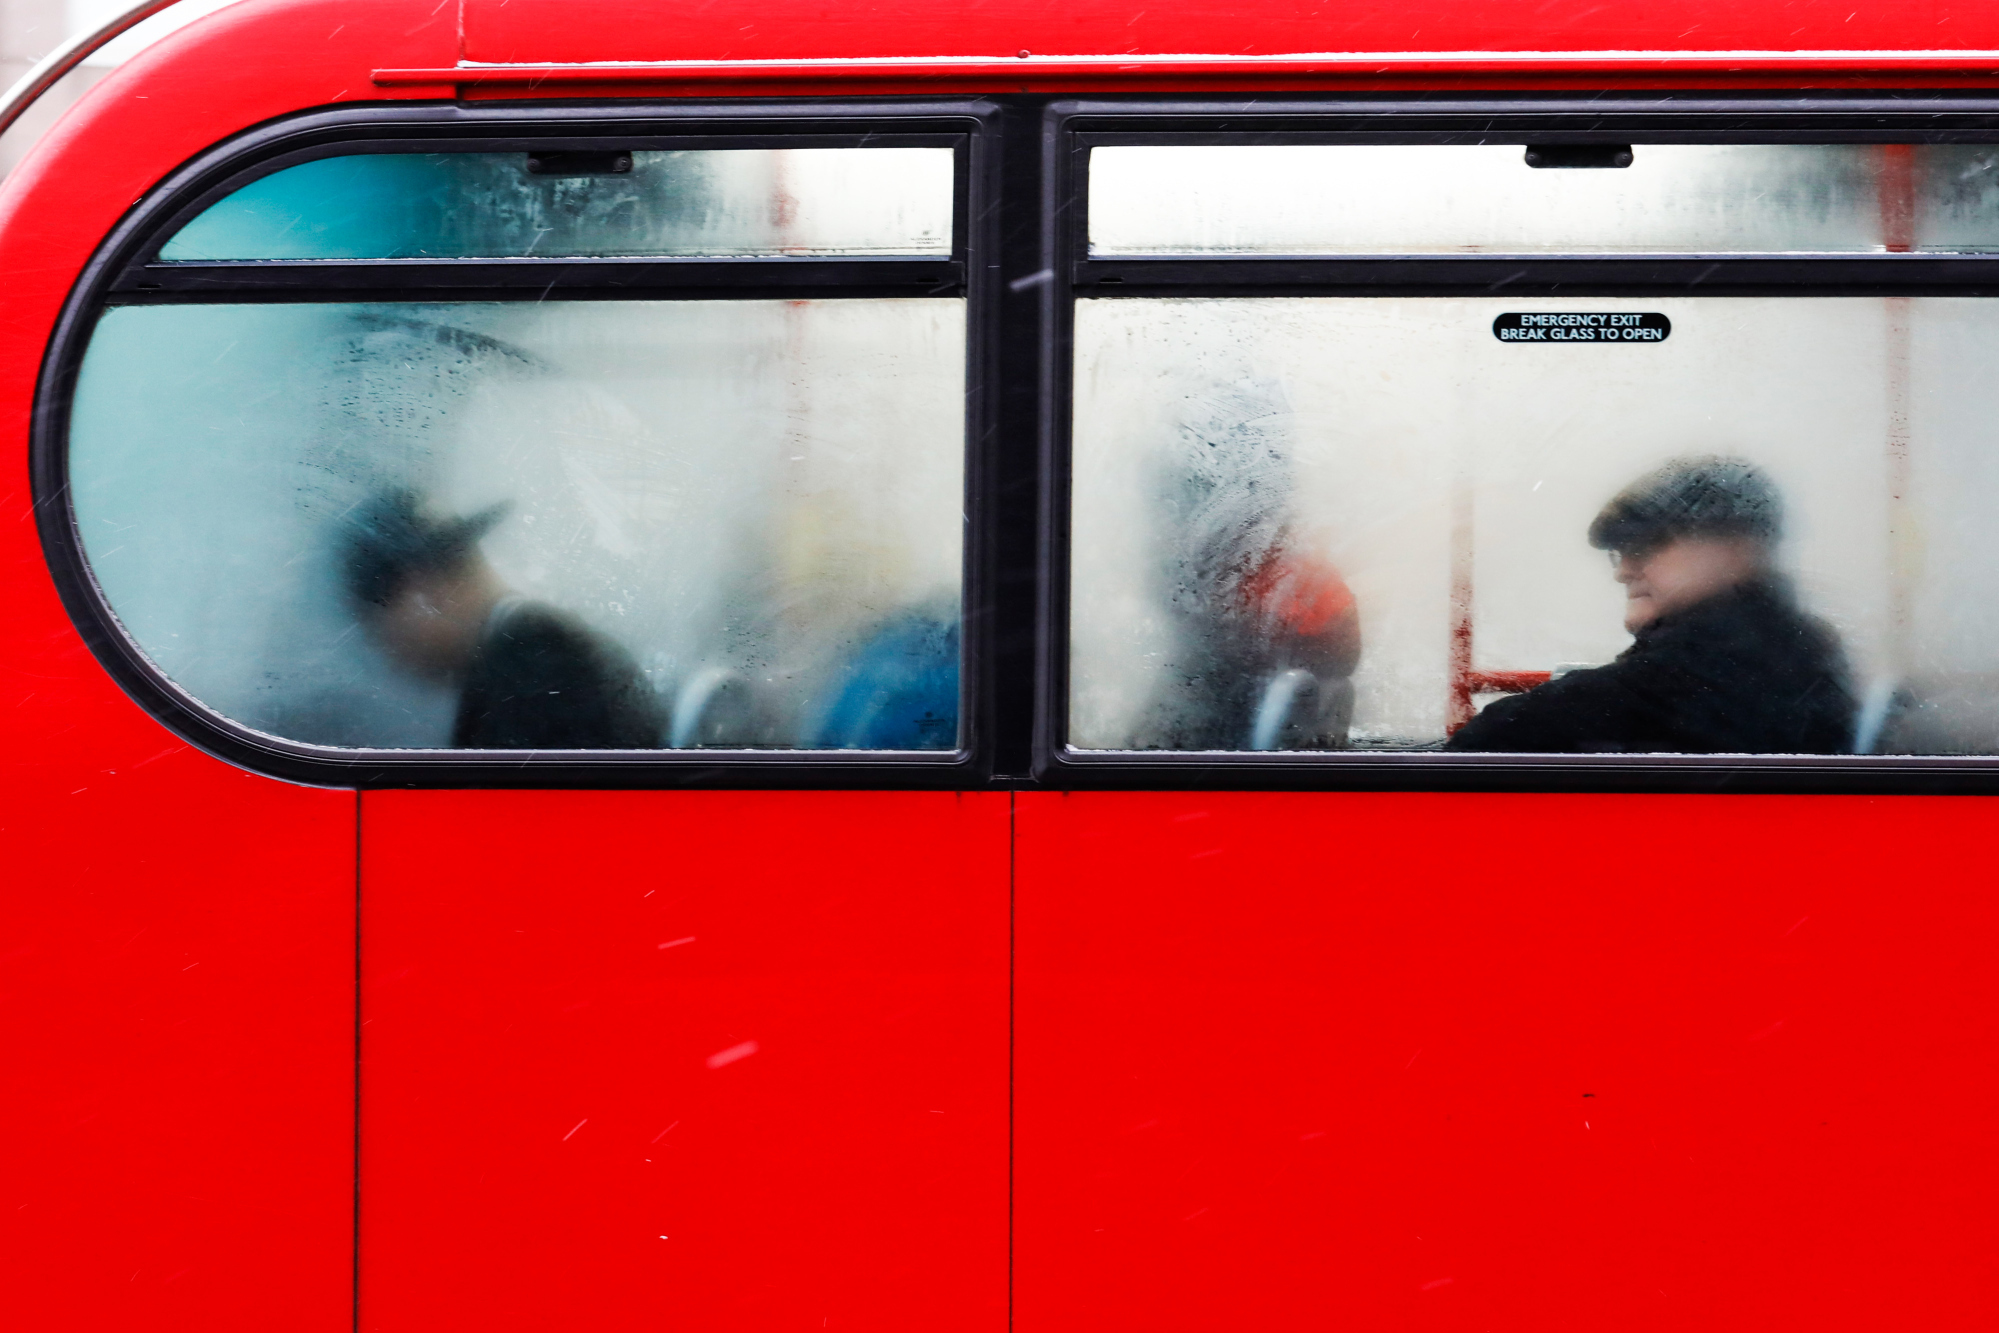 Commuters ride on a bus in London, U.K., on Thursday, March 1, 2018. The freezing weather entrenched across much of Europe is stretching Britain's supply of natural gas with fresh snowfall forecast for much of the country. Photographer: Luke MacGregor/Bloomberg